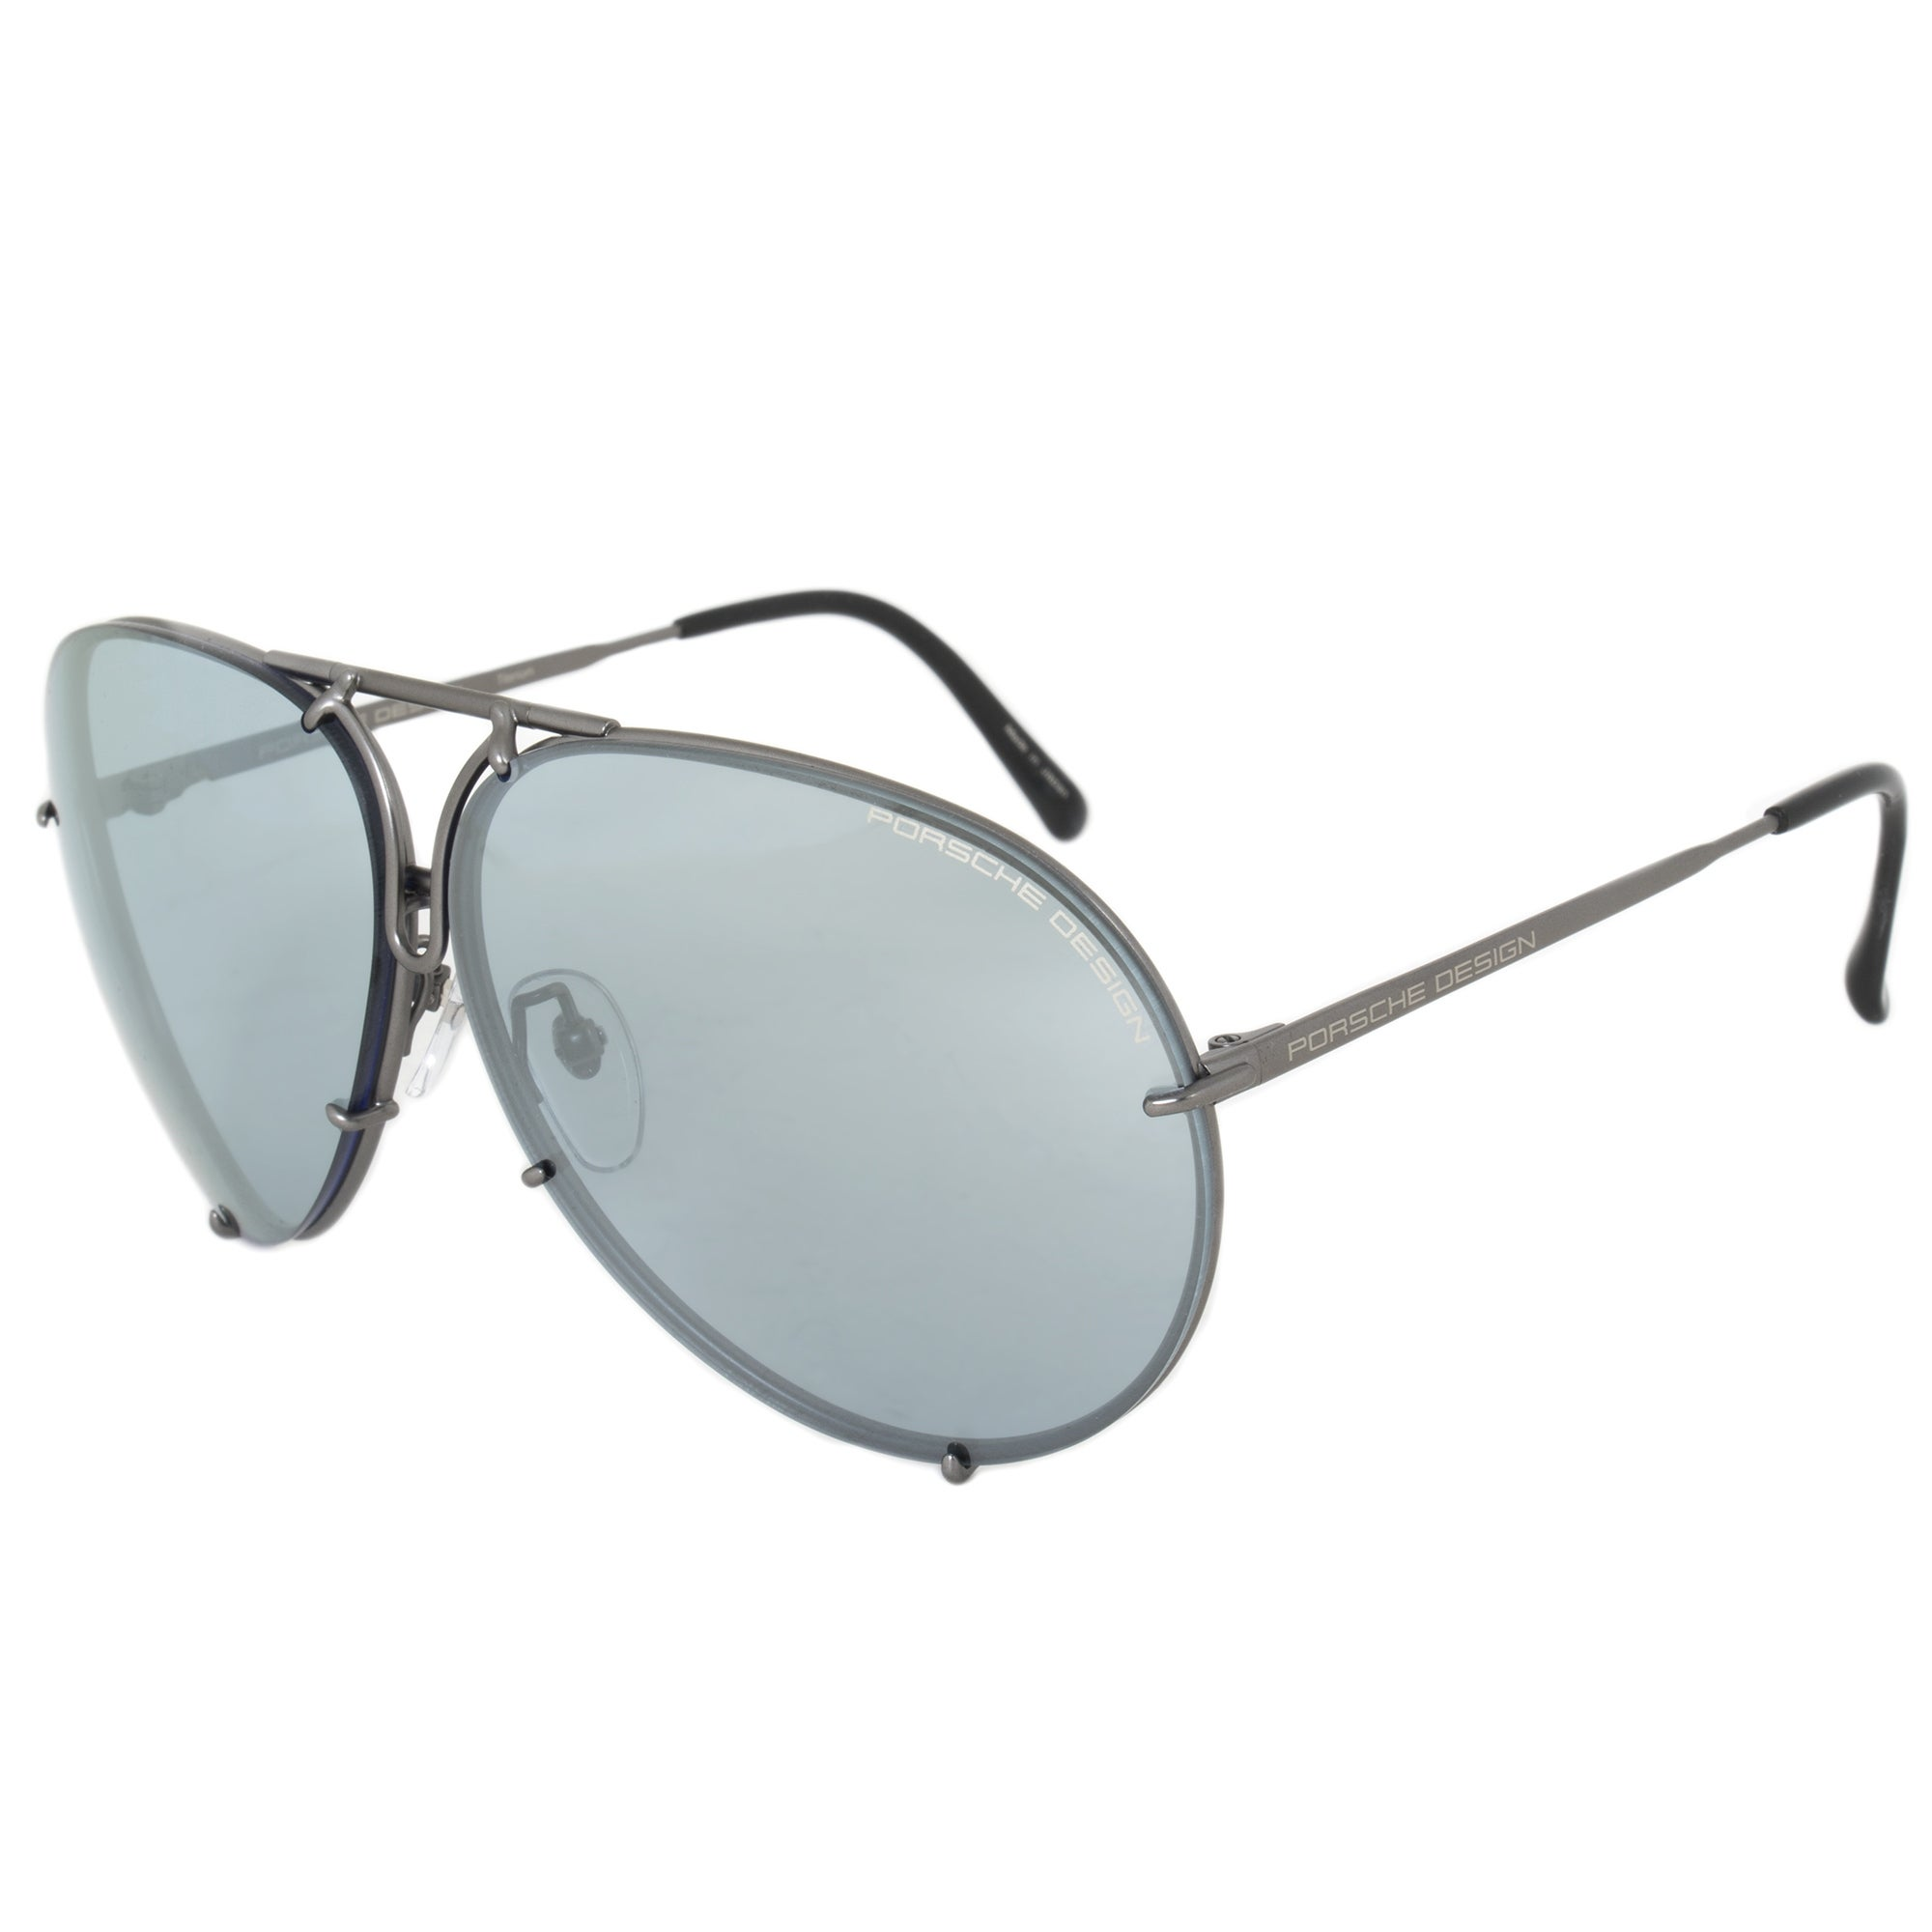 90142e167d6 Shop Porsche Design Design P8978 C 69 Aviator Sunglasses for Men ...